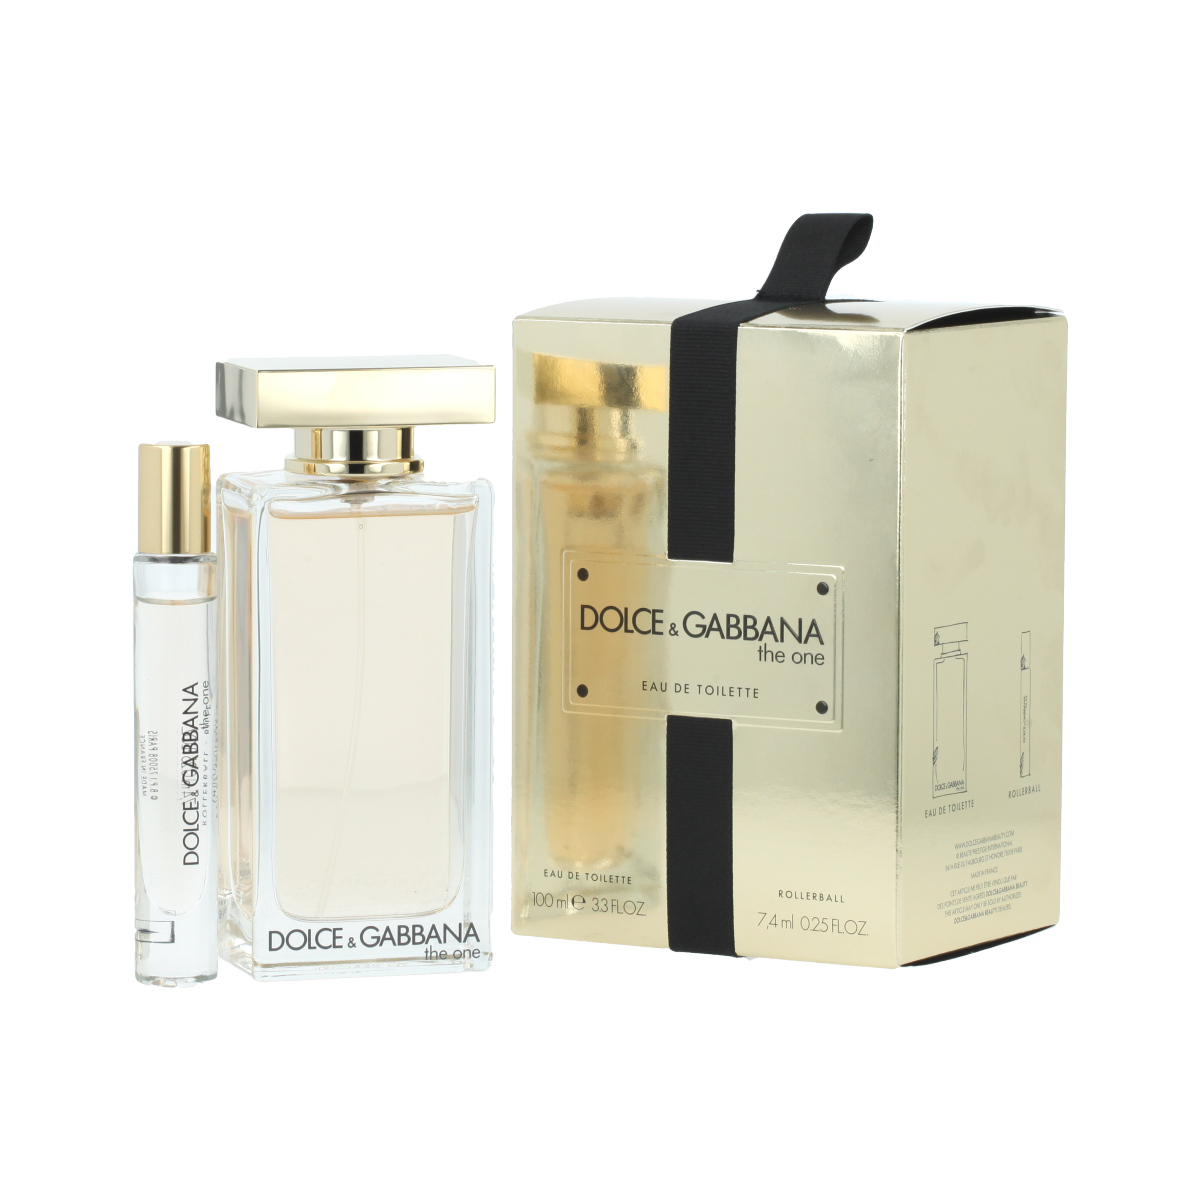 Dolce & Gabbana The One Eau de Toilette EDT 100 ml + EDT Roll-On 7,4 ml W